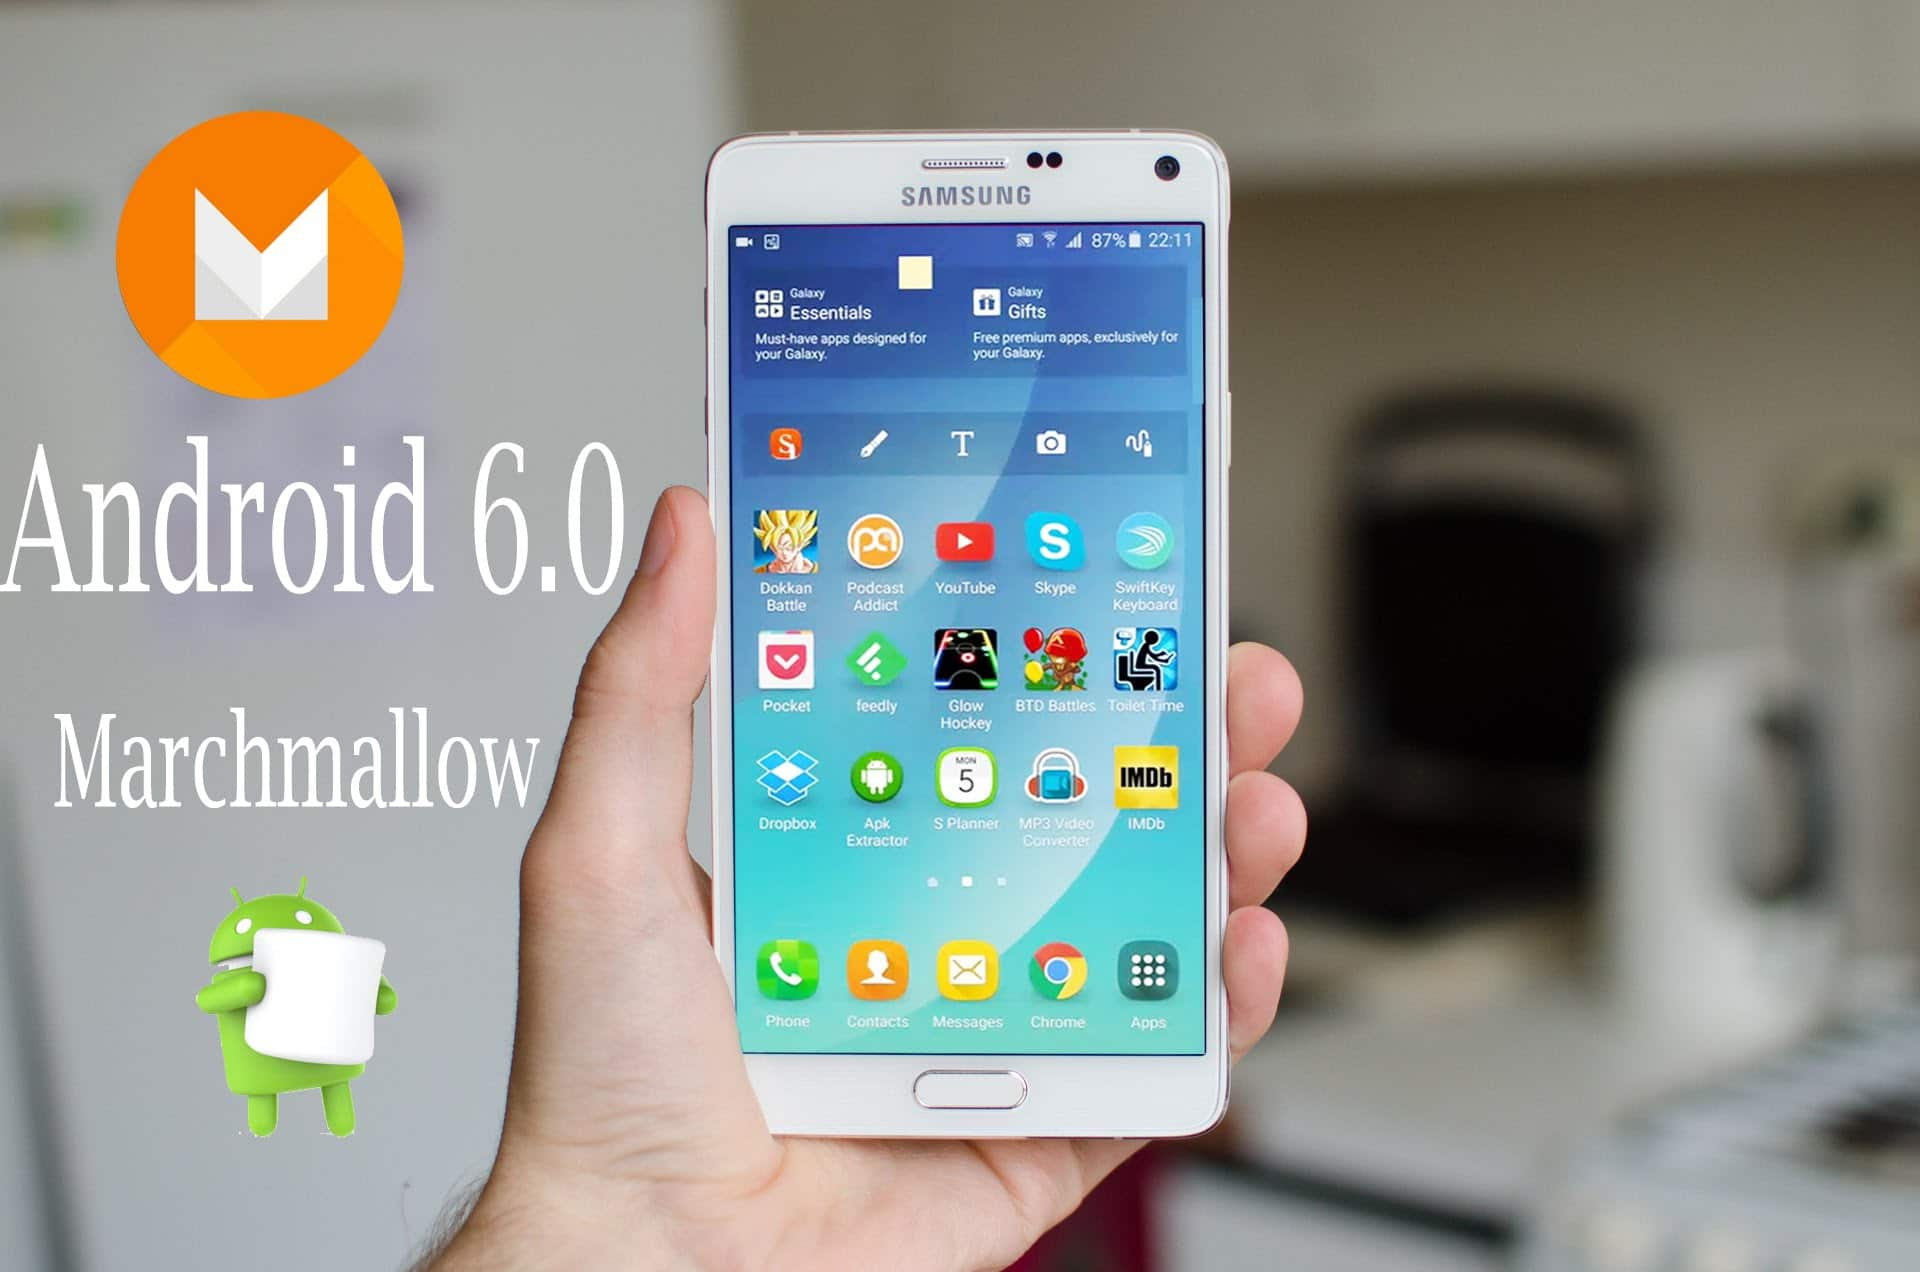 android 6.0 marshmallow version samsung note 4